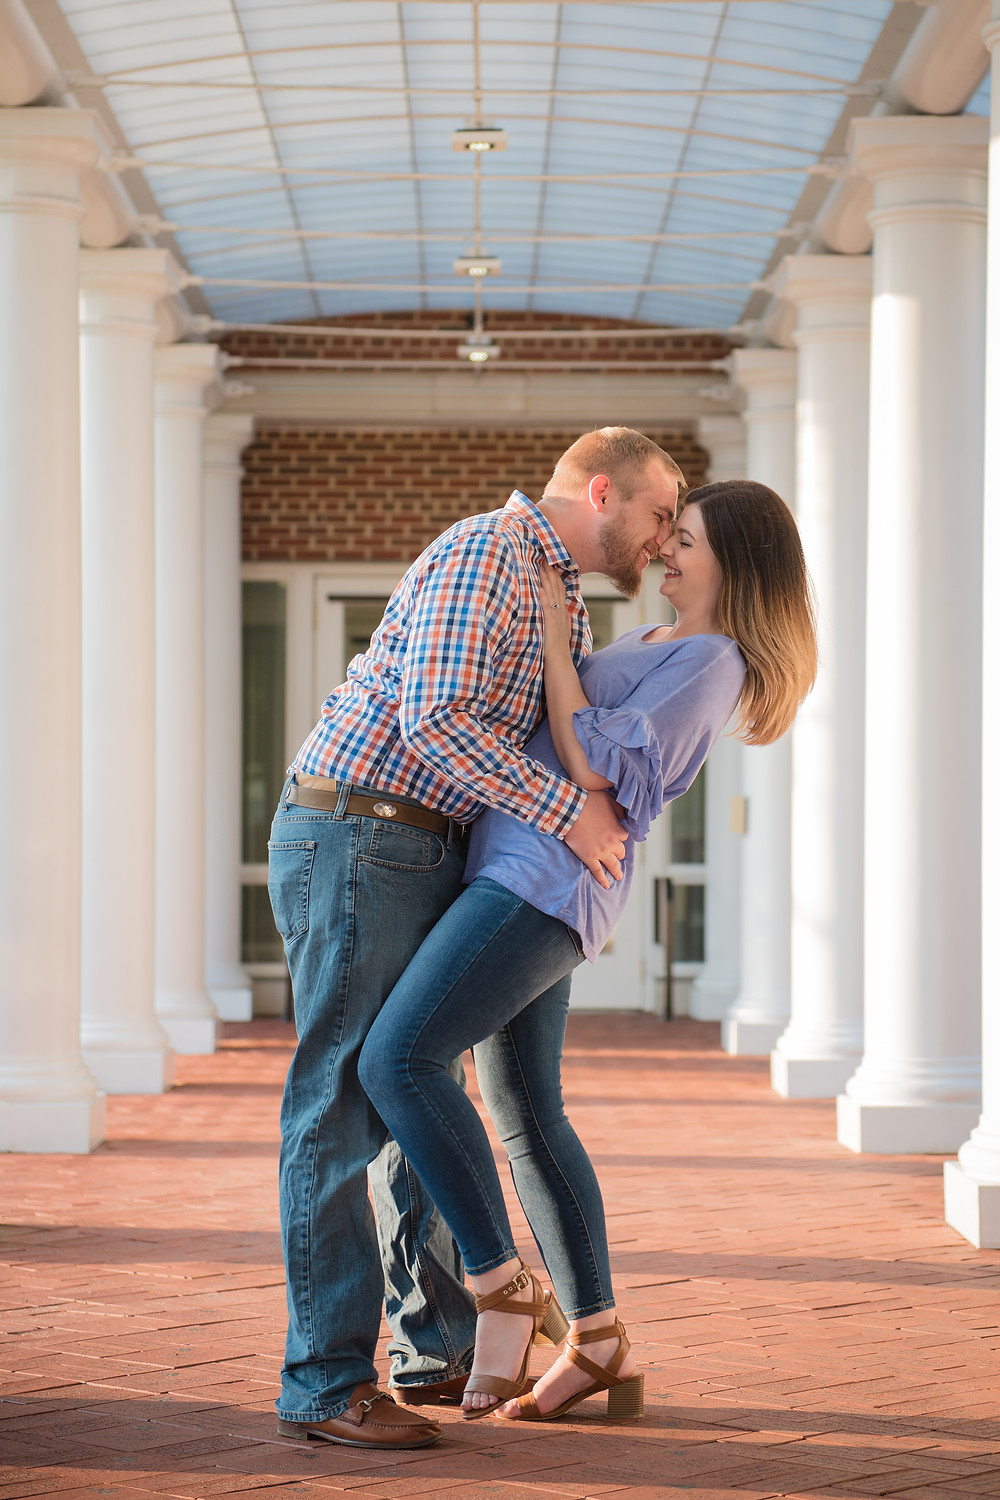 A West Virginia University engagement photo session. Picture taken in front of a campus building with white columns